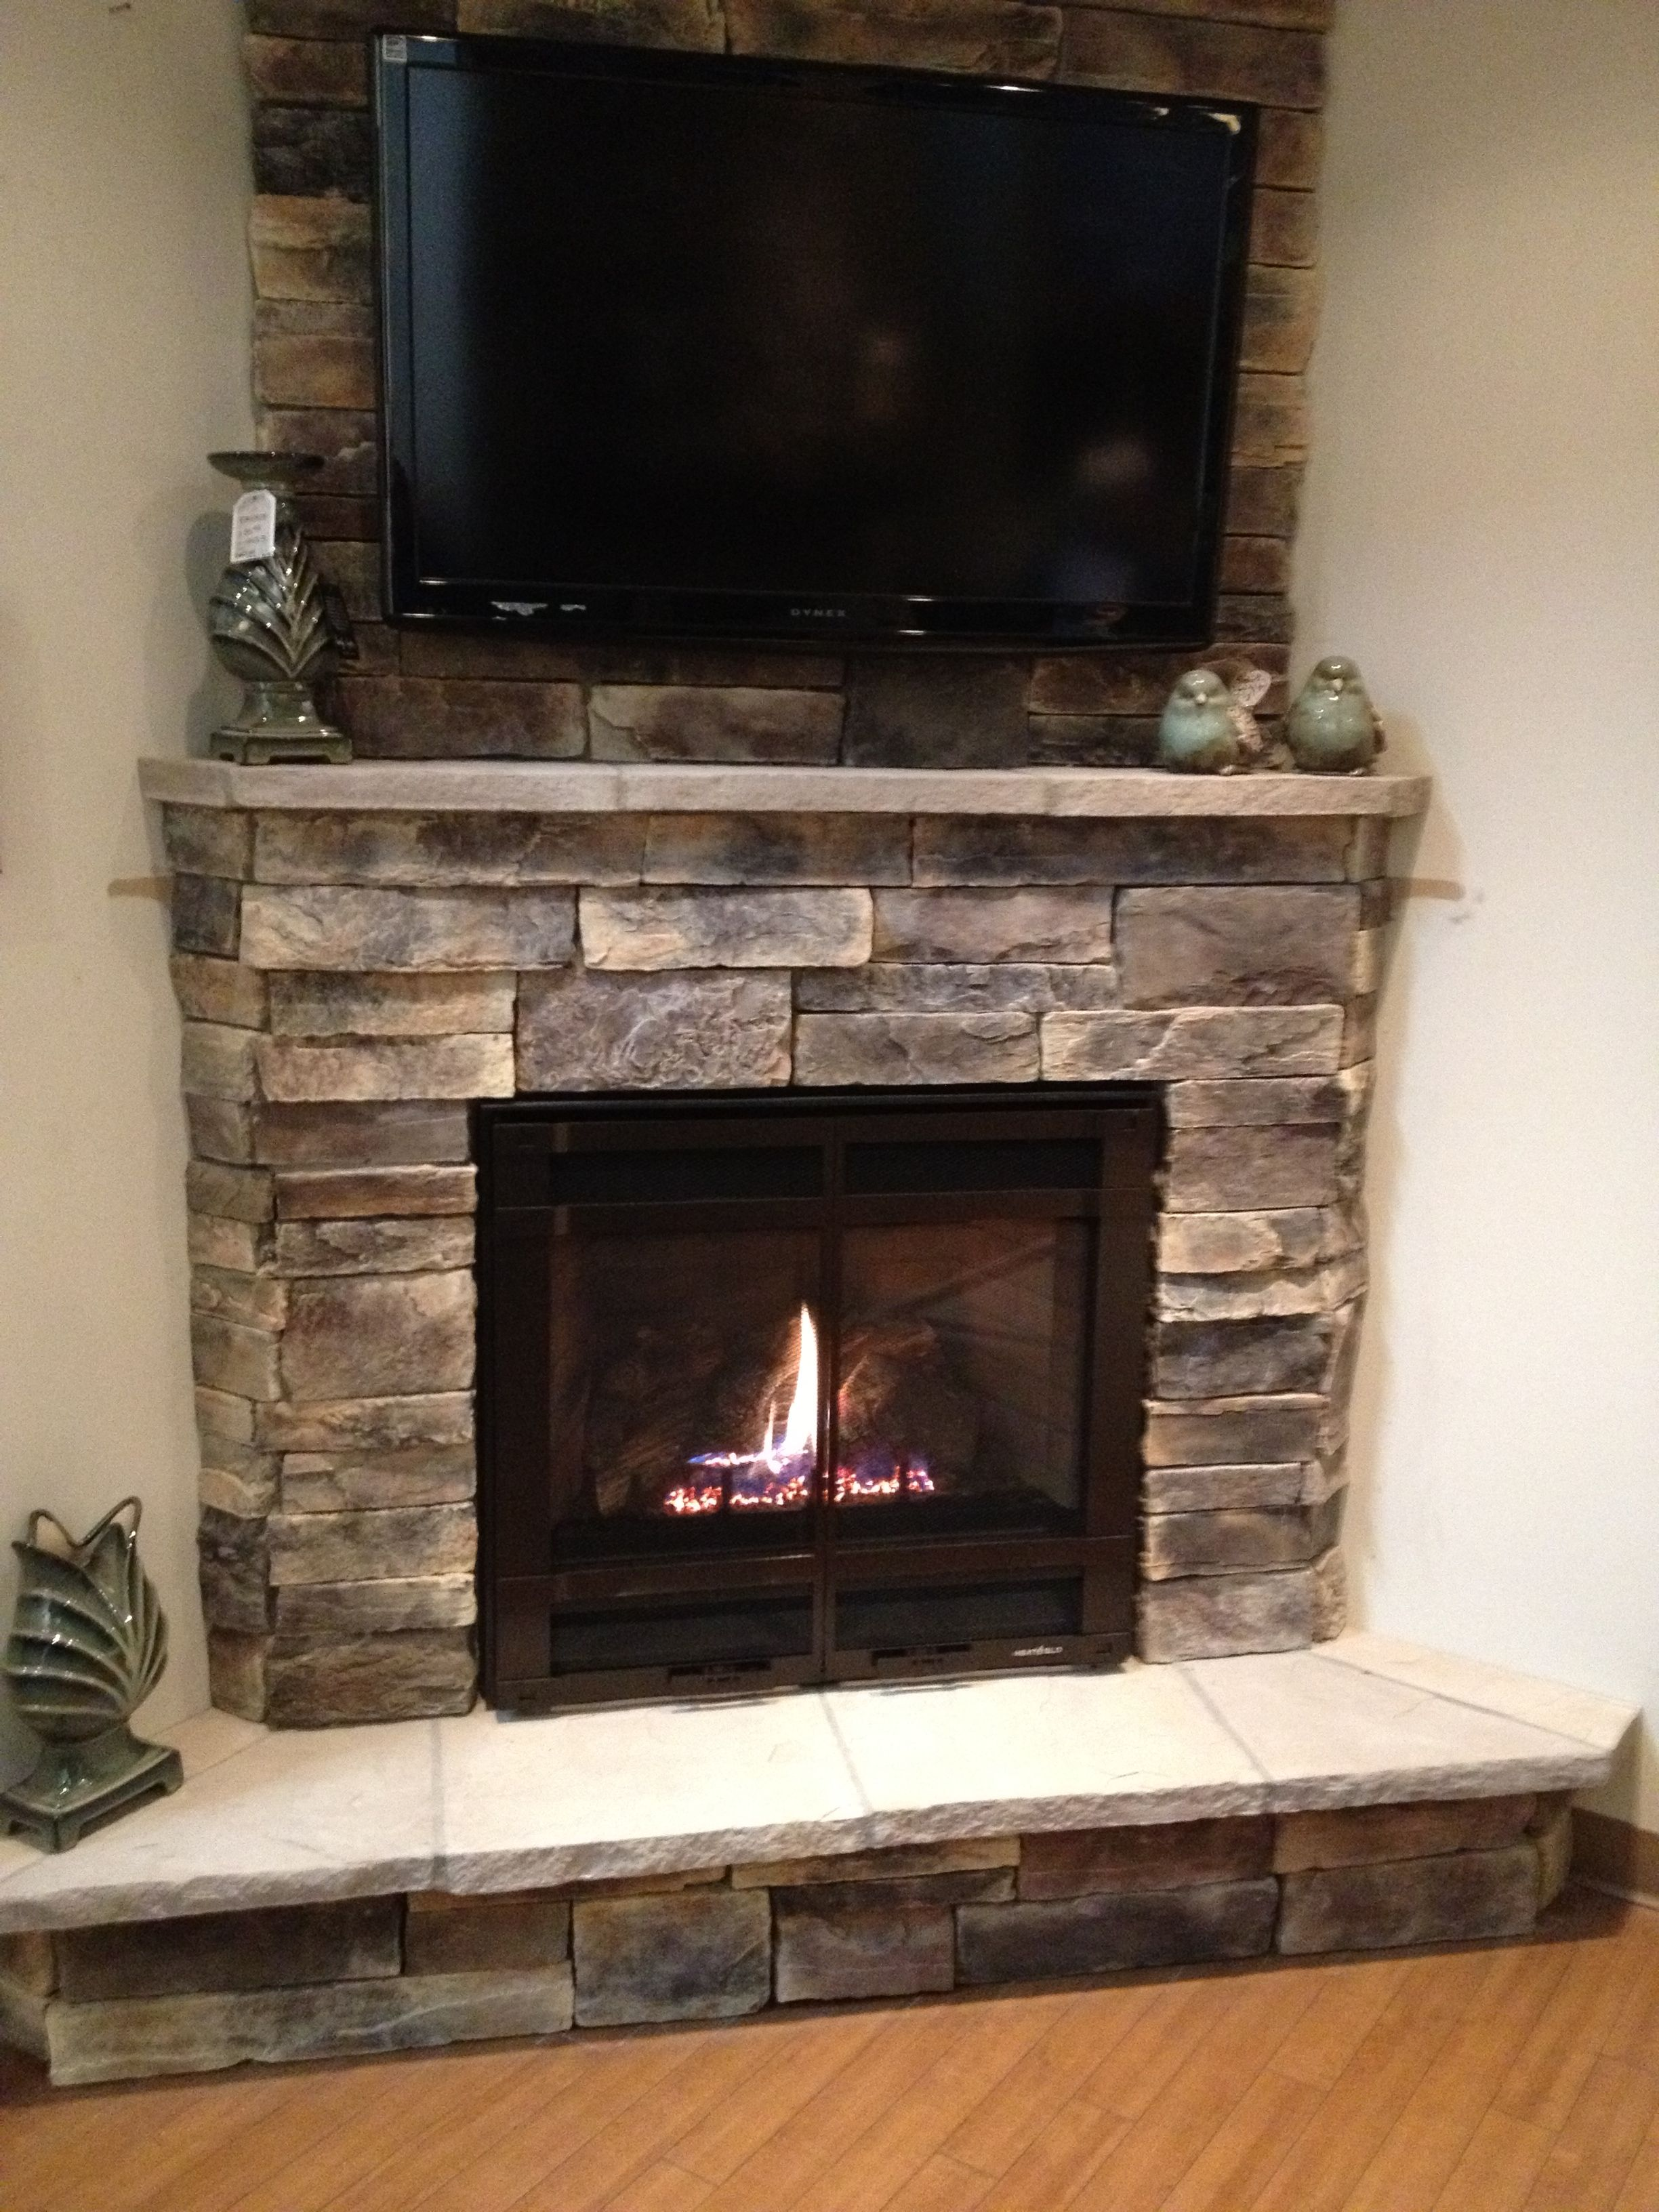 Tv In Corner Of Room Design: Corner-fireplace With TV Mounted Above